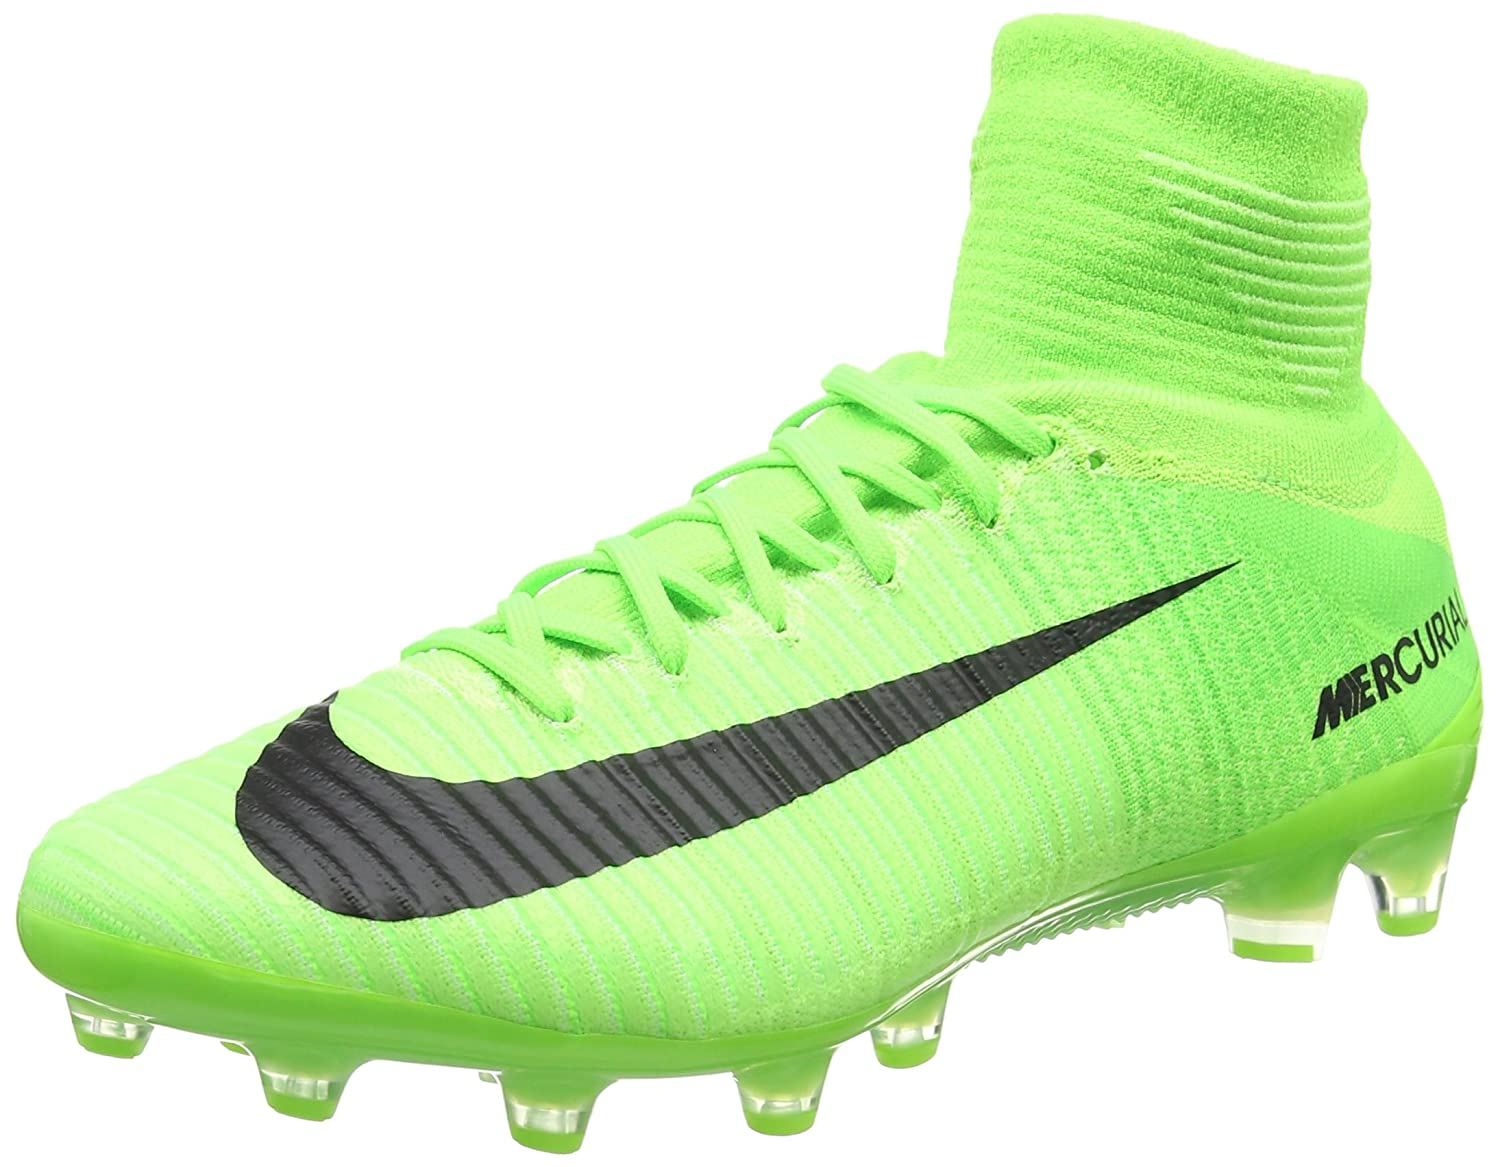 quality design 213d9 6b878 Amazon.com   Nike Men s Mercurial Superfly V FG Electric Green Black Ghost Green  Soccer Shoes - 6A   Soccer